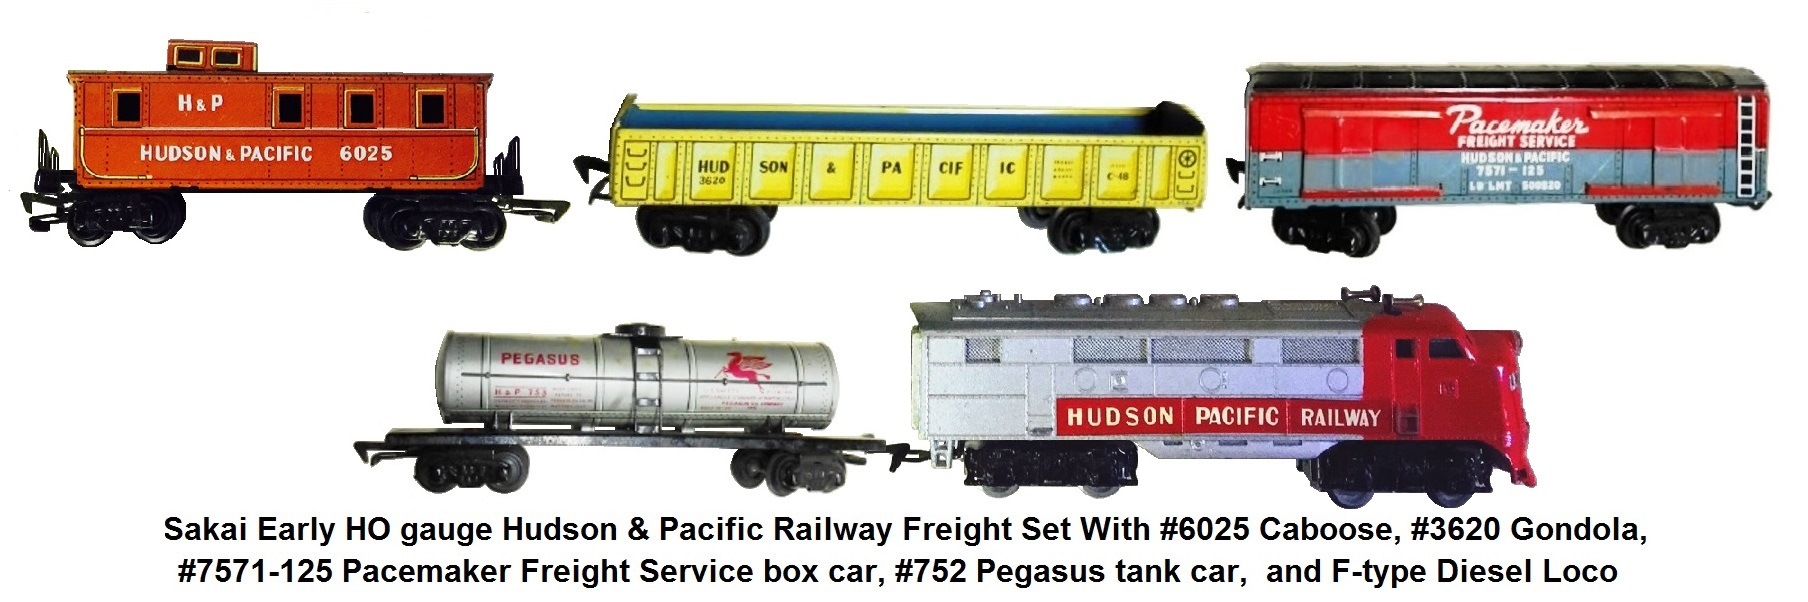 Sakai early HO gauge Hudson & Pacific Railway Freight set with diesel loco, #3620 gondola, #7571-125 Pacemaker Freight Service boxcar, #752 Pegasus tank car, and #6025 caboose